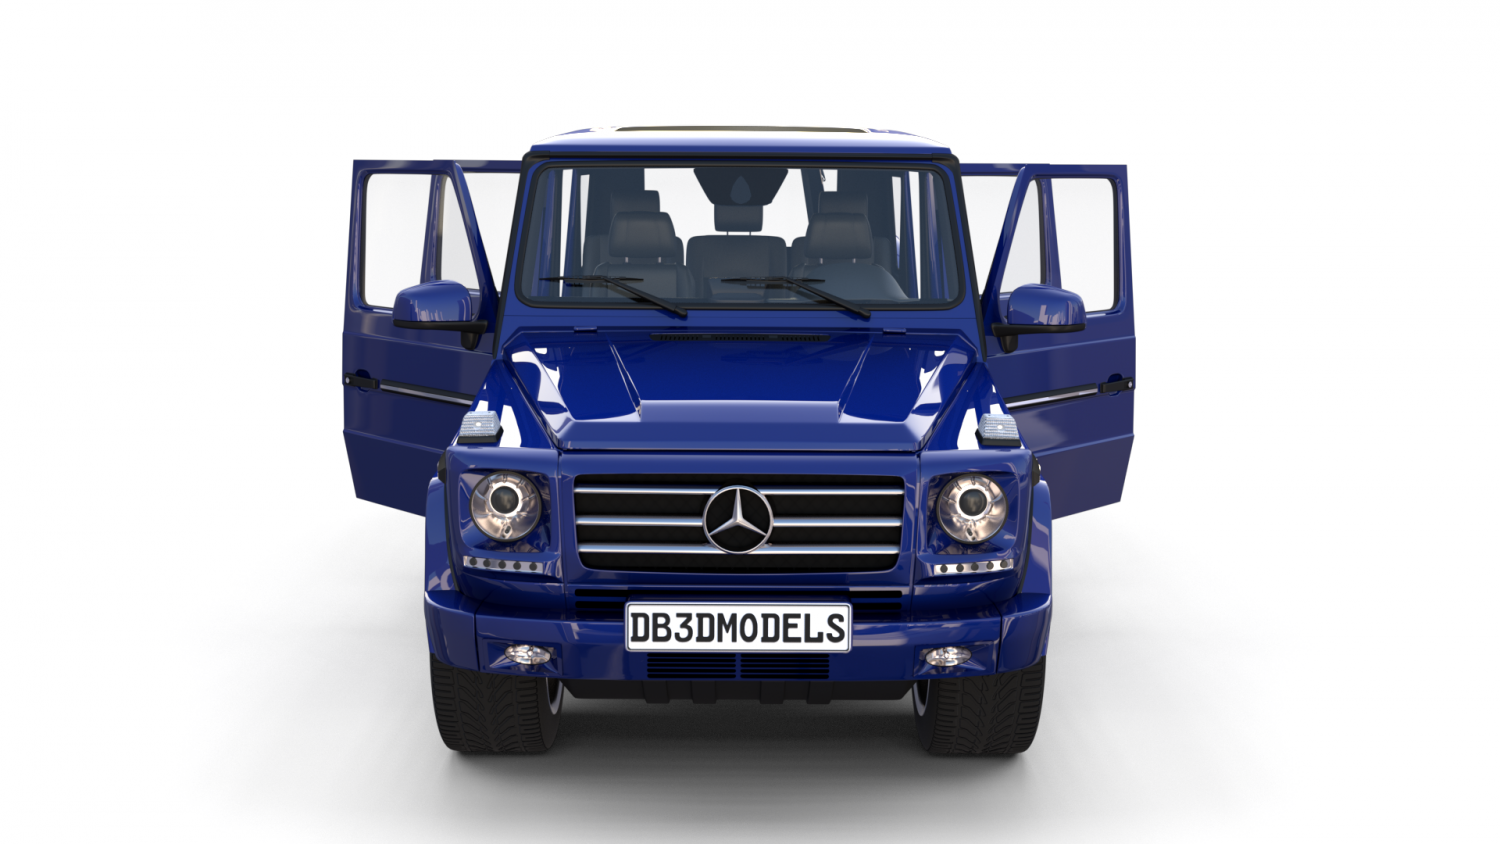 Mercedes Benz G Class with interior Blue 3D-Modell in Autoteile 3DExport